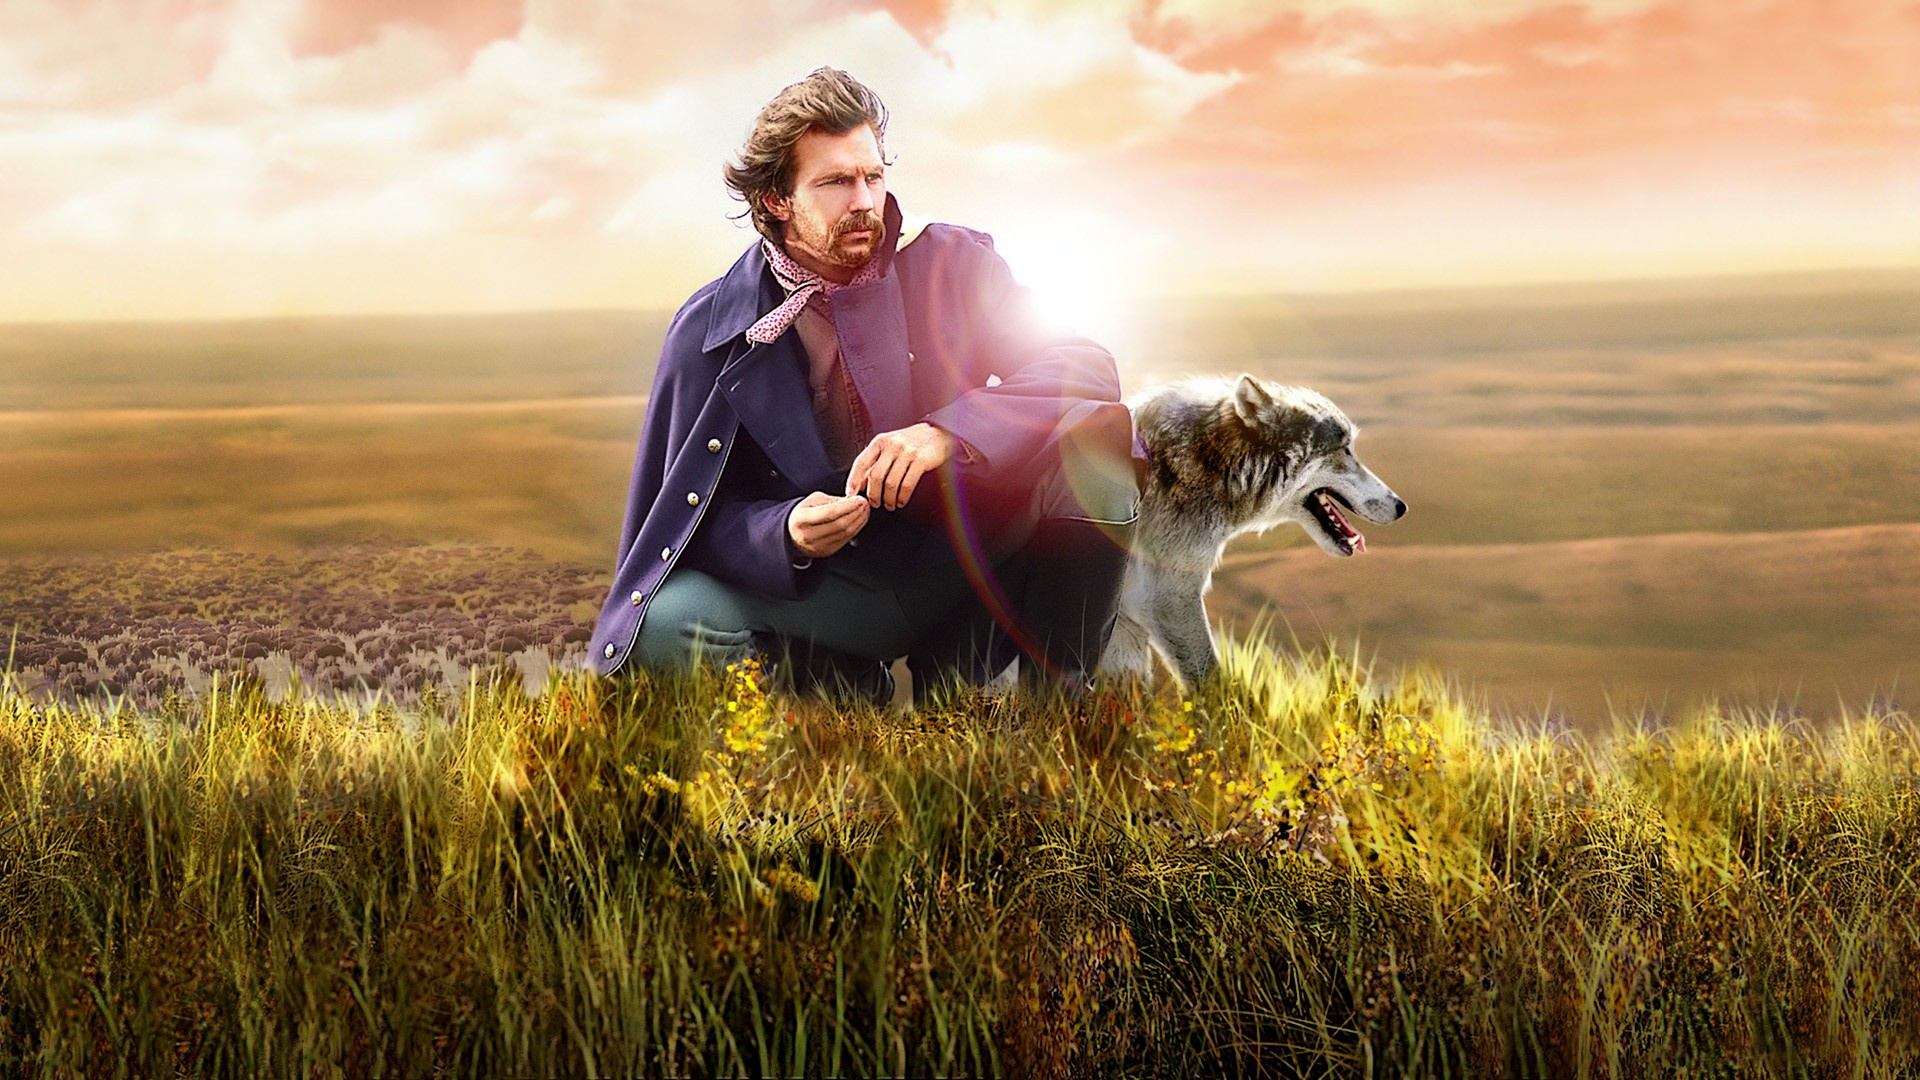 an analysis of the topic of the dances with wolves western In terms of the highest grossing movies at the box office of all time, a modern westerns box office hit doesn't appear on the list until dances with wolves at 177th.